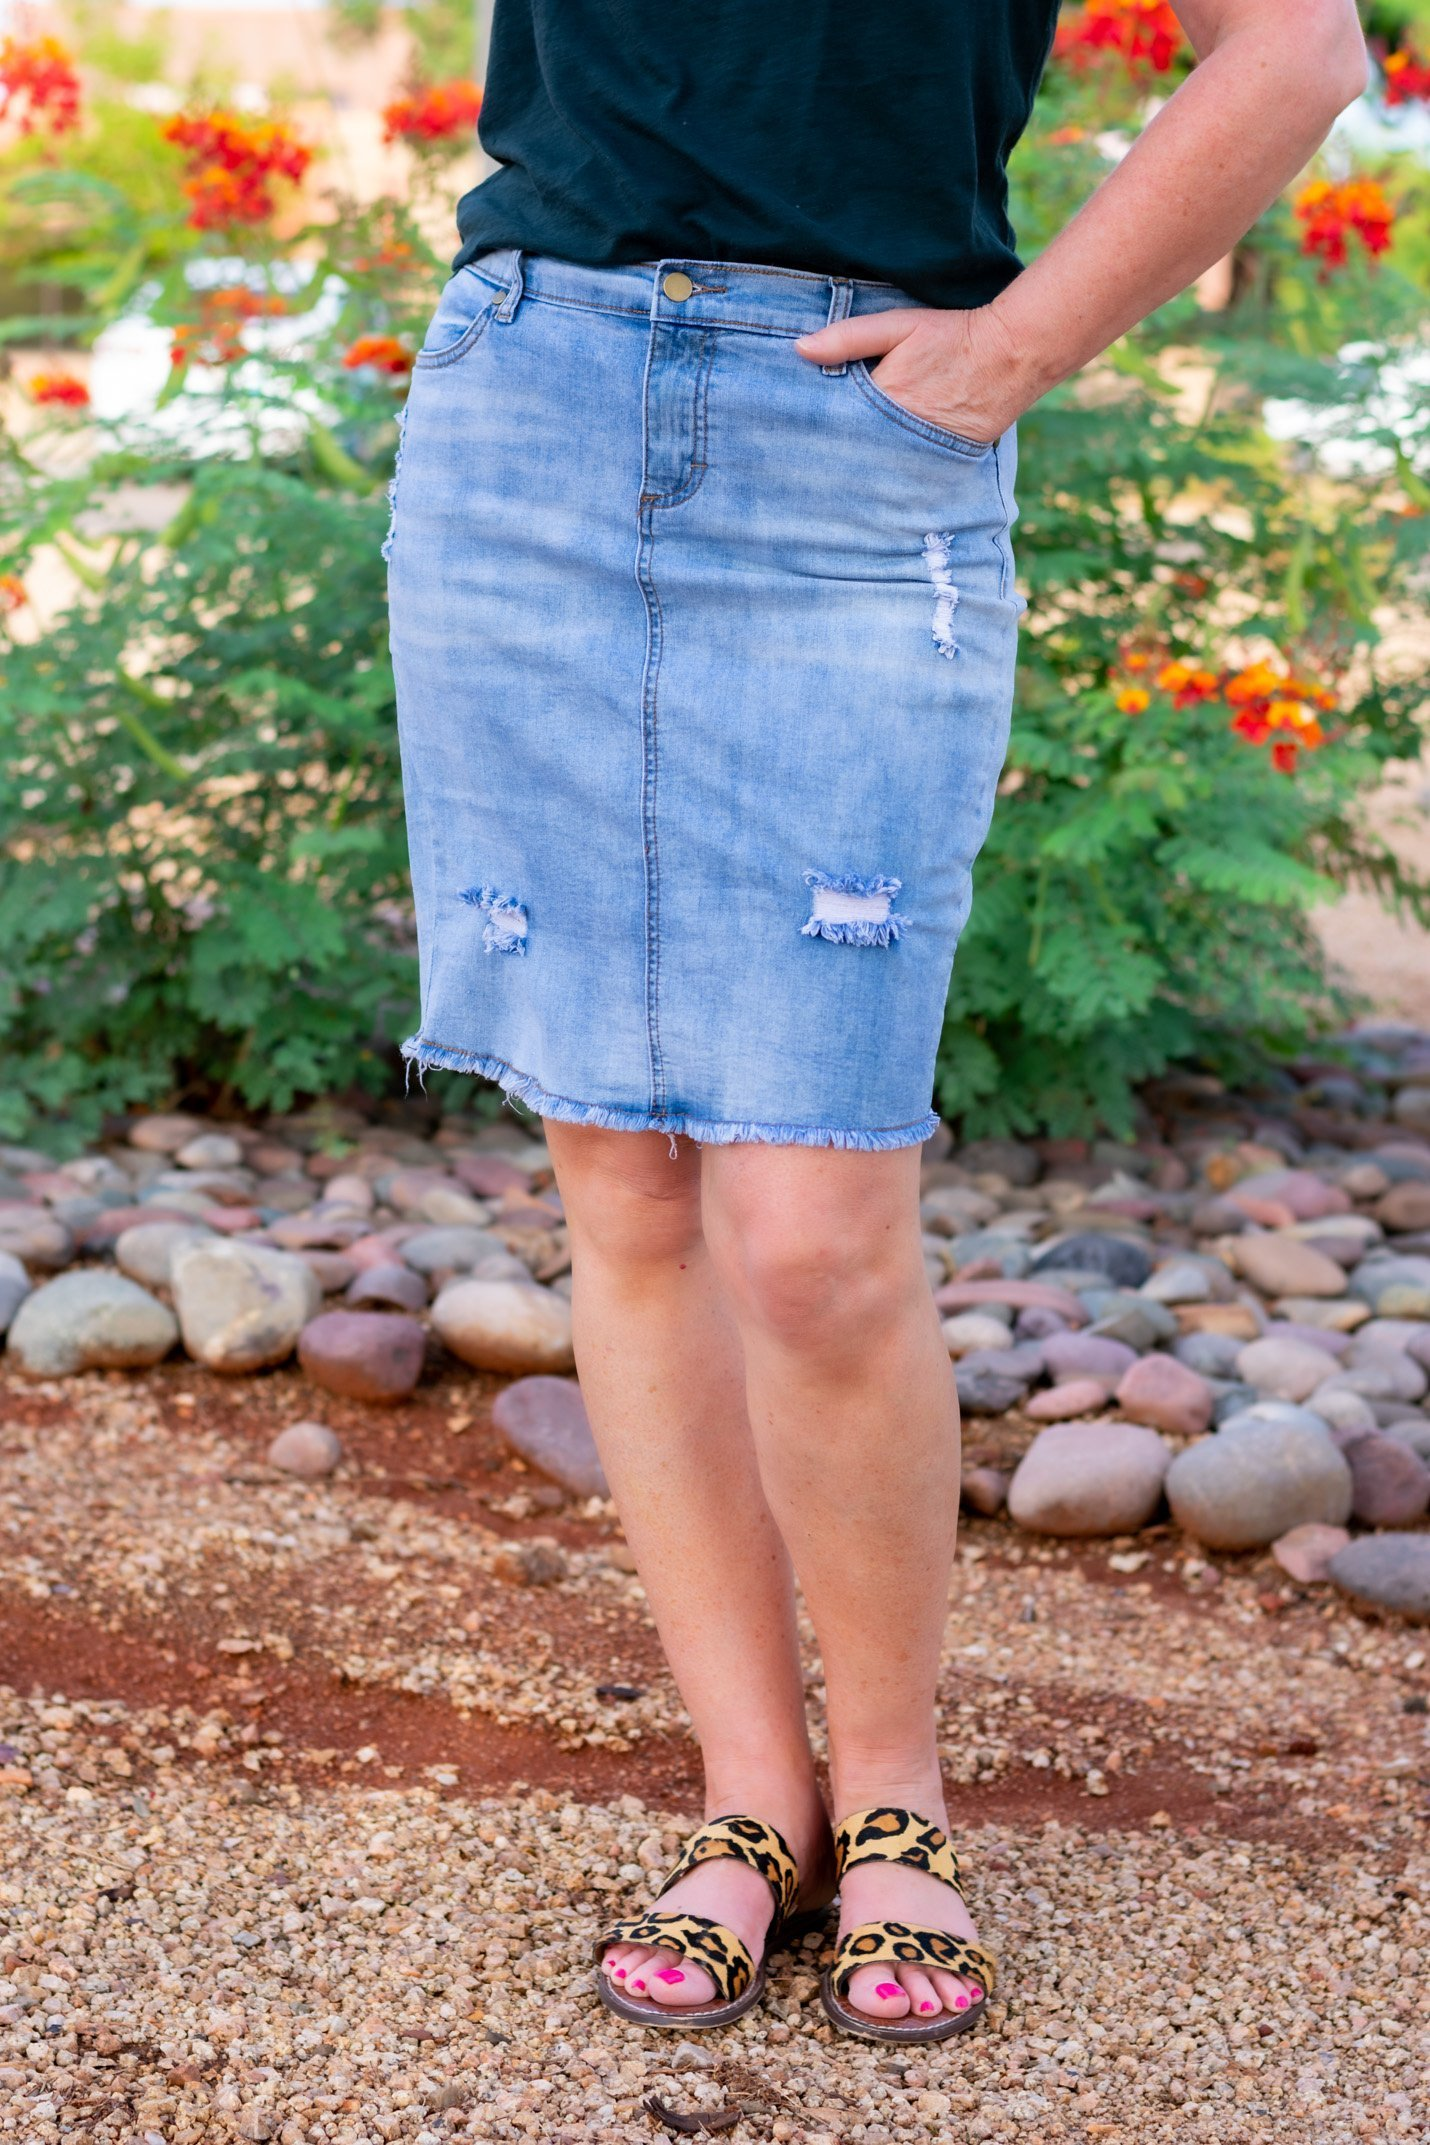 Distressed blue jean skirt